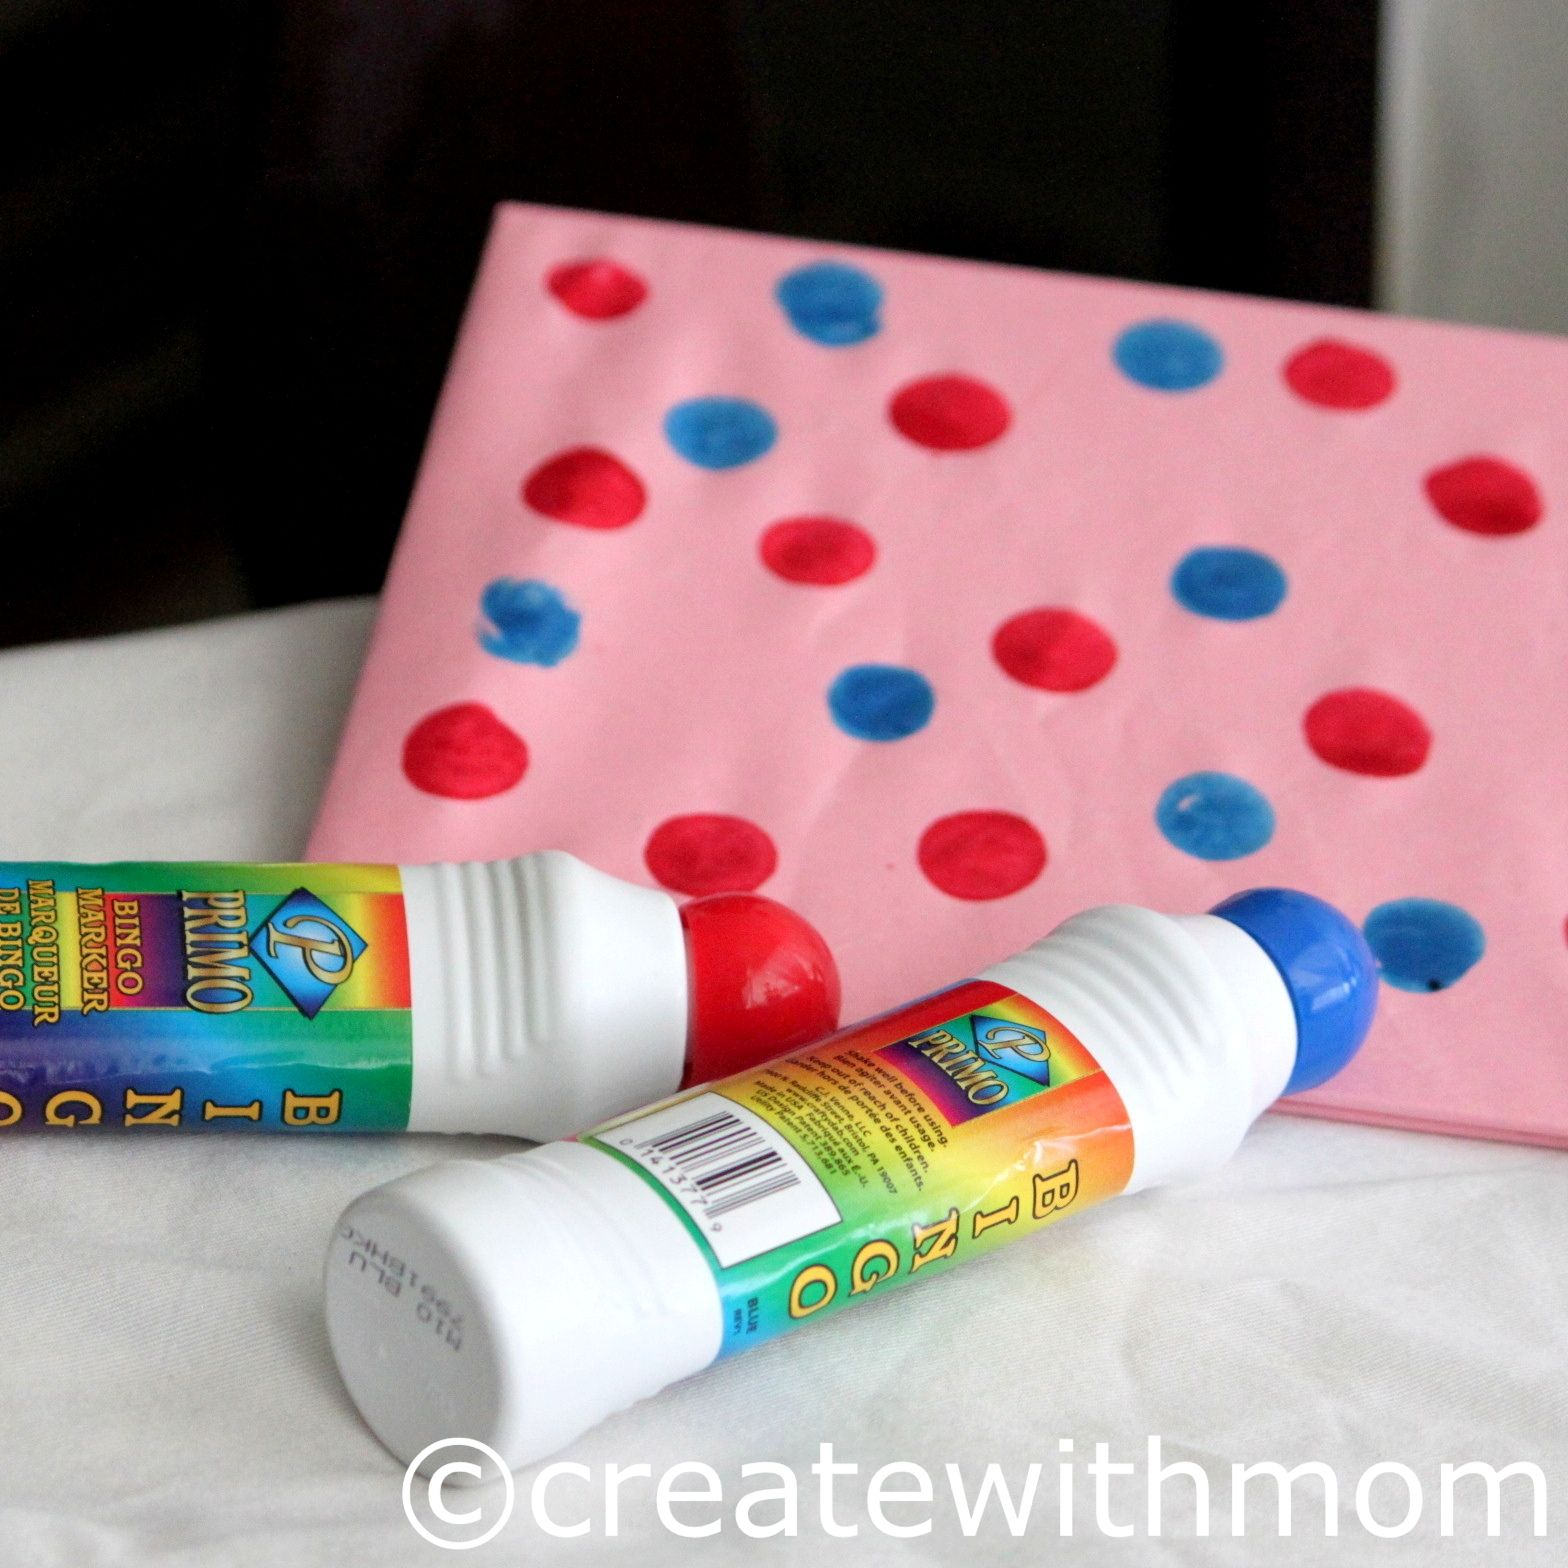 image titled decorate. Image Titled Decorate Your School Binder Step Diy Covers By Blooming Homestead On Iheartnaptimecom. How To Cover Ugly Binders With Pretty Paper